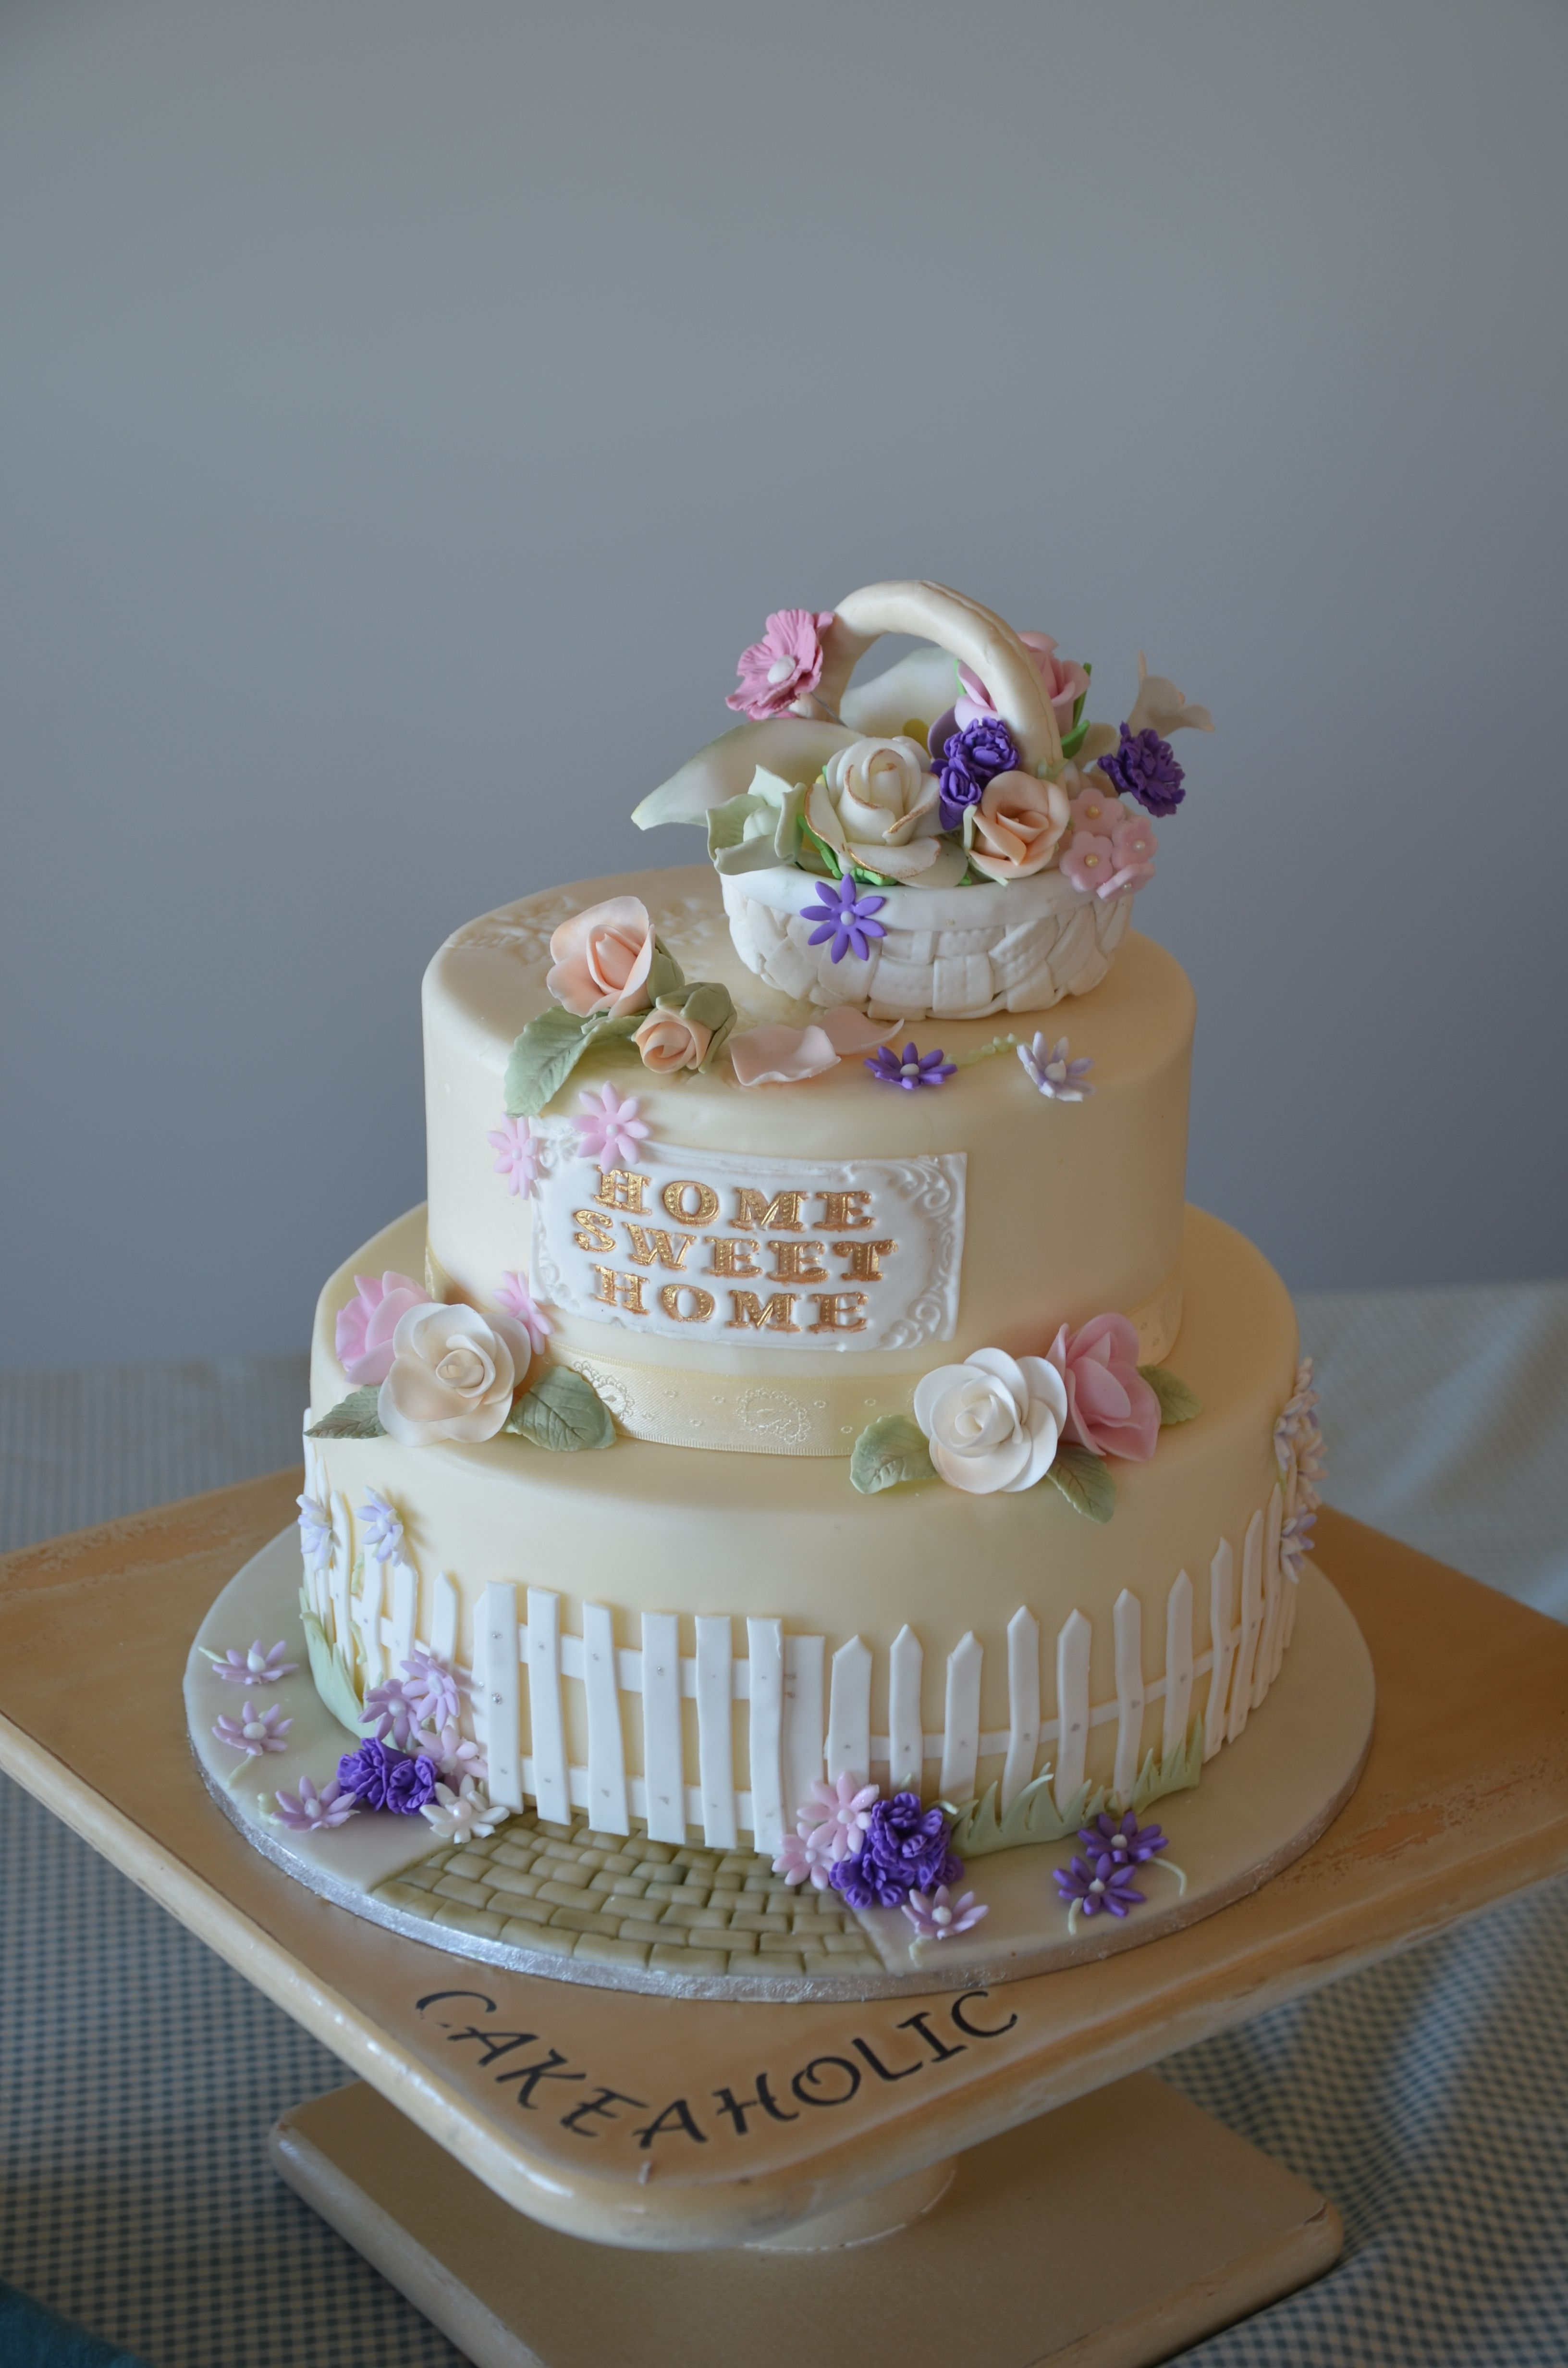 My present cake - This is a photo of a cake I did with all the left over flowers I made.